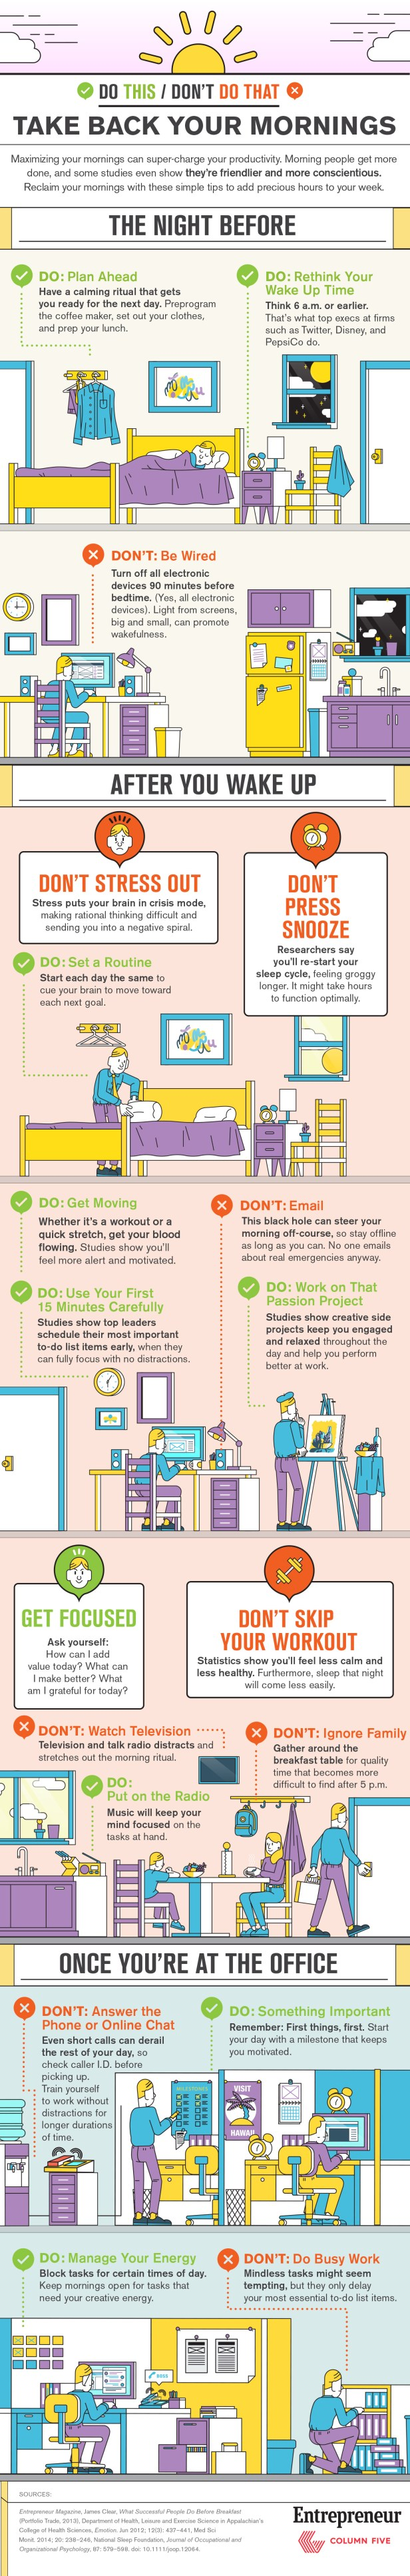 1413563200-take-your-mornings-back-infographic